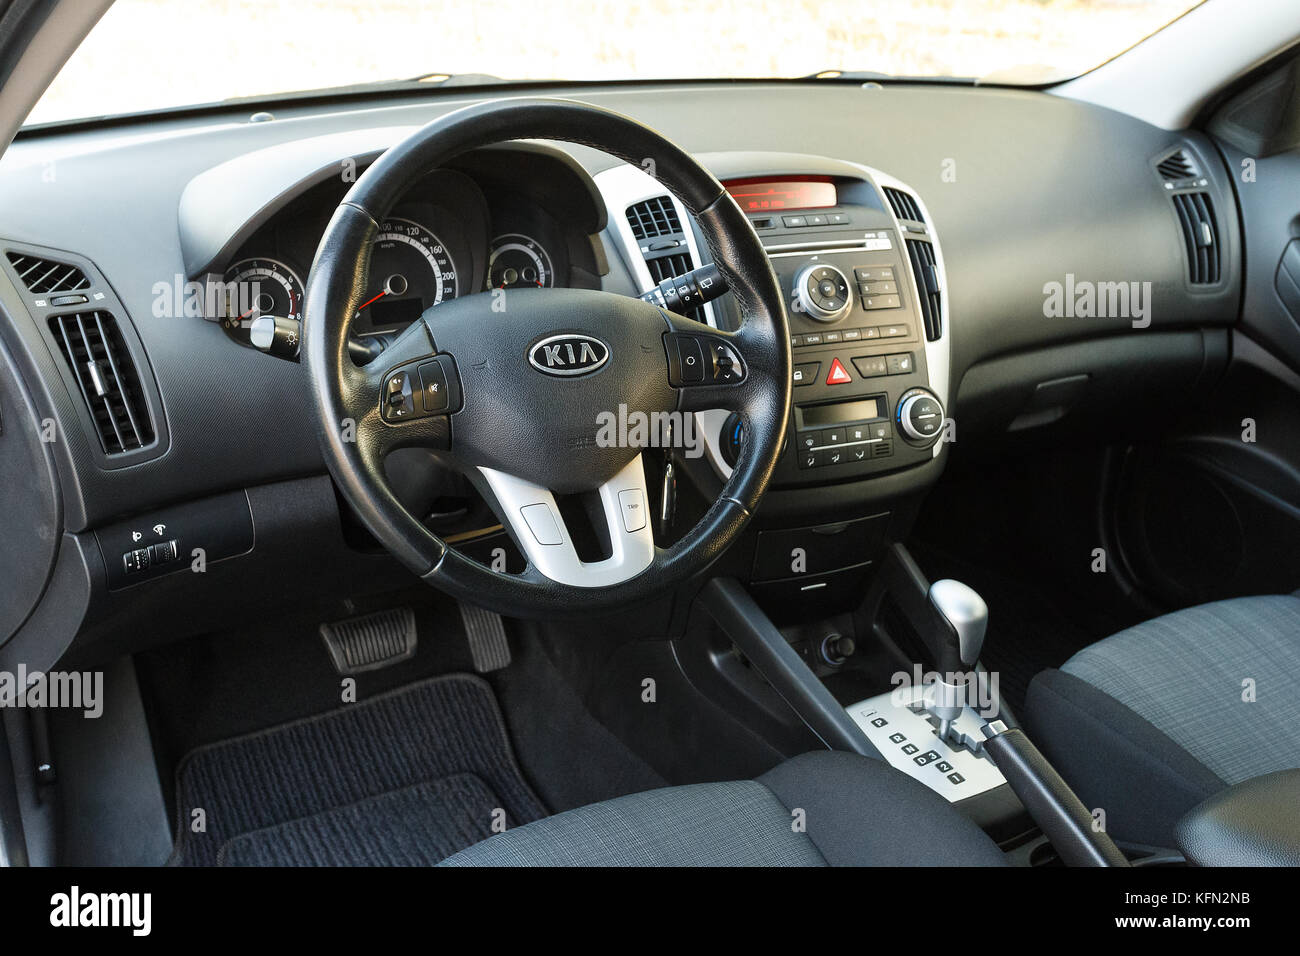 DNIPRO, UKRAINE - September 05, 2017: Kia Ceed, Interieur ...